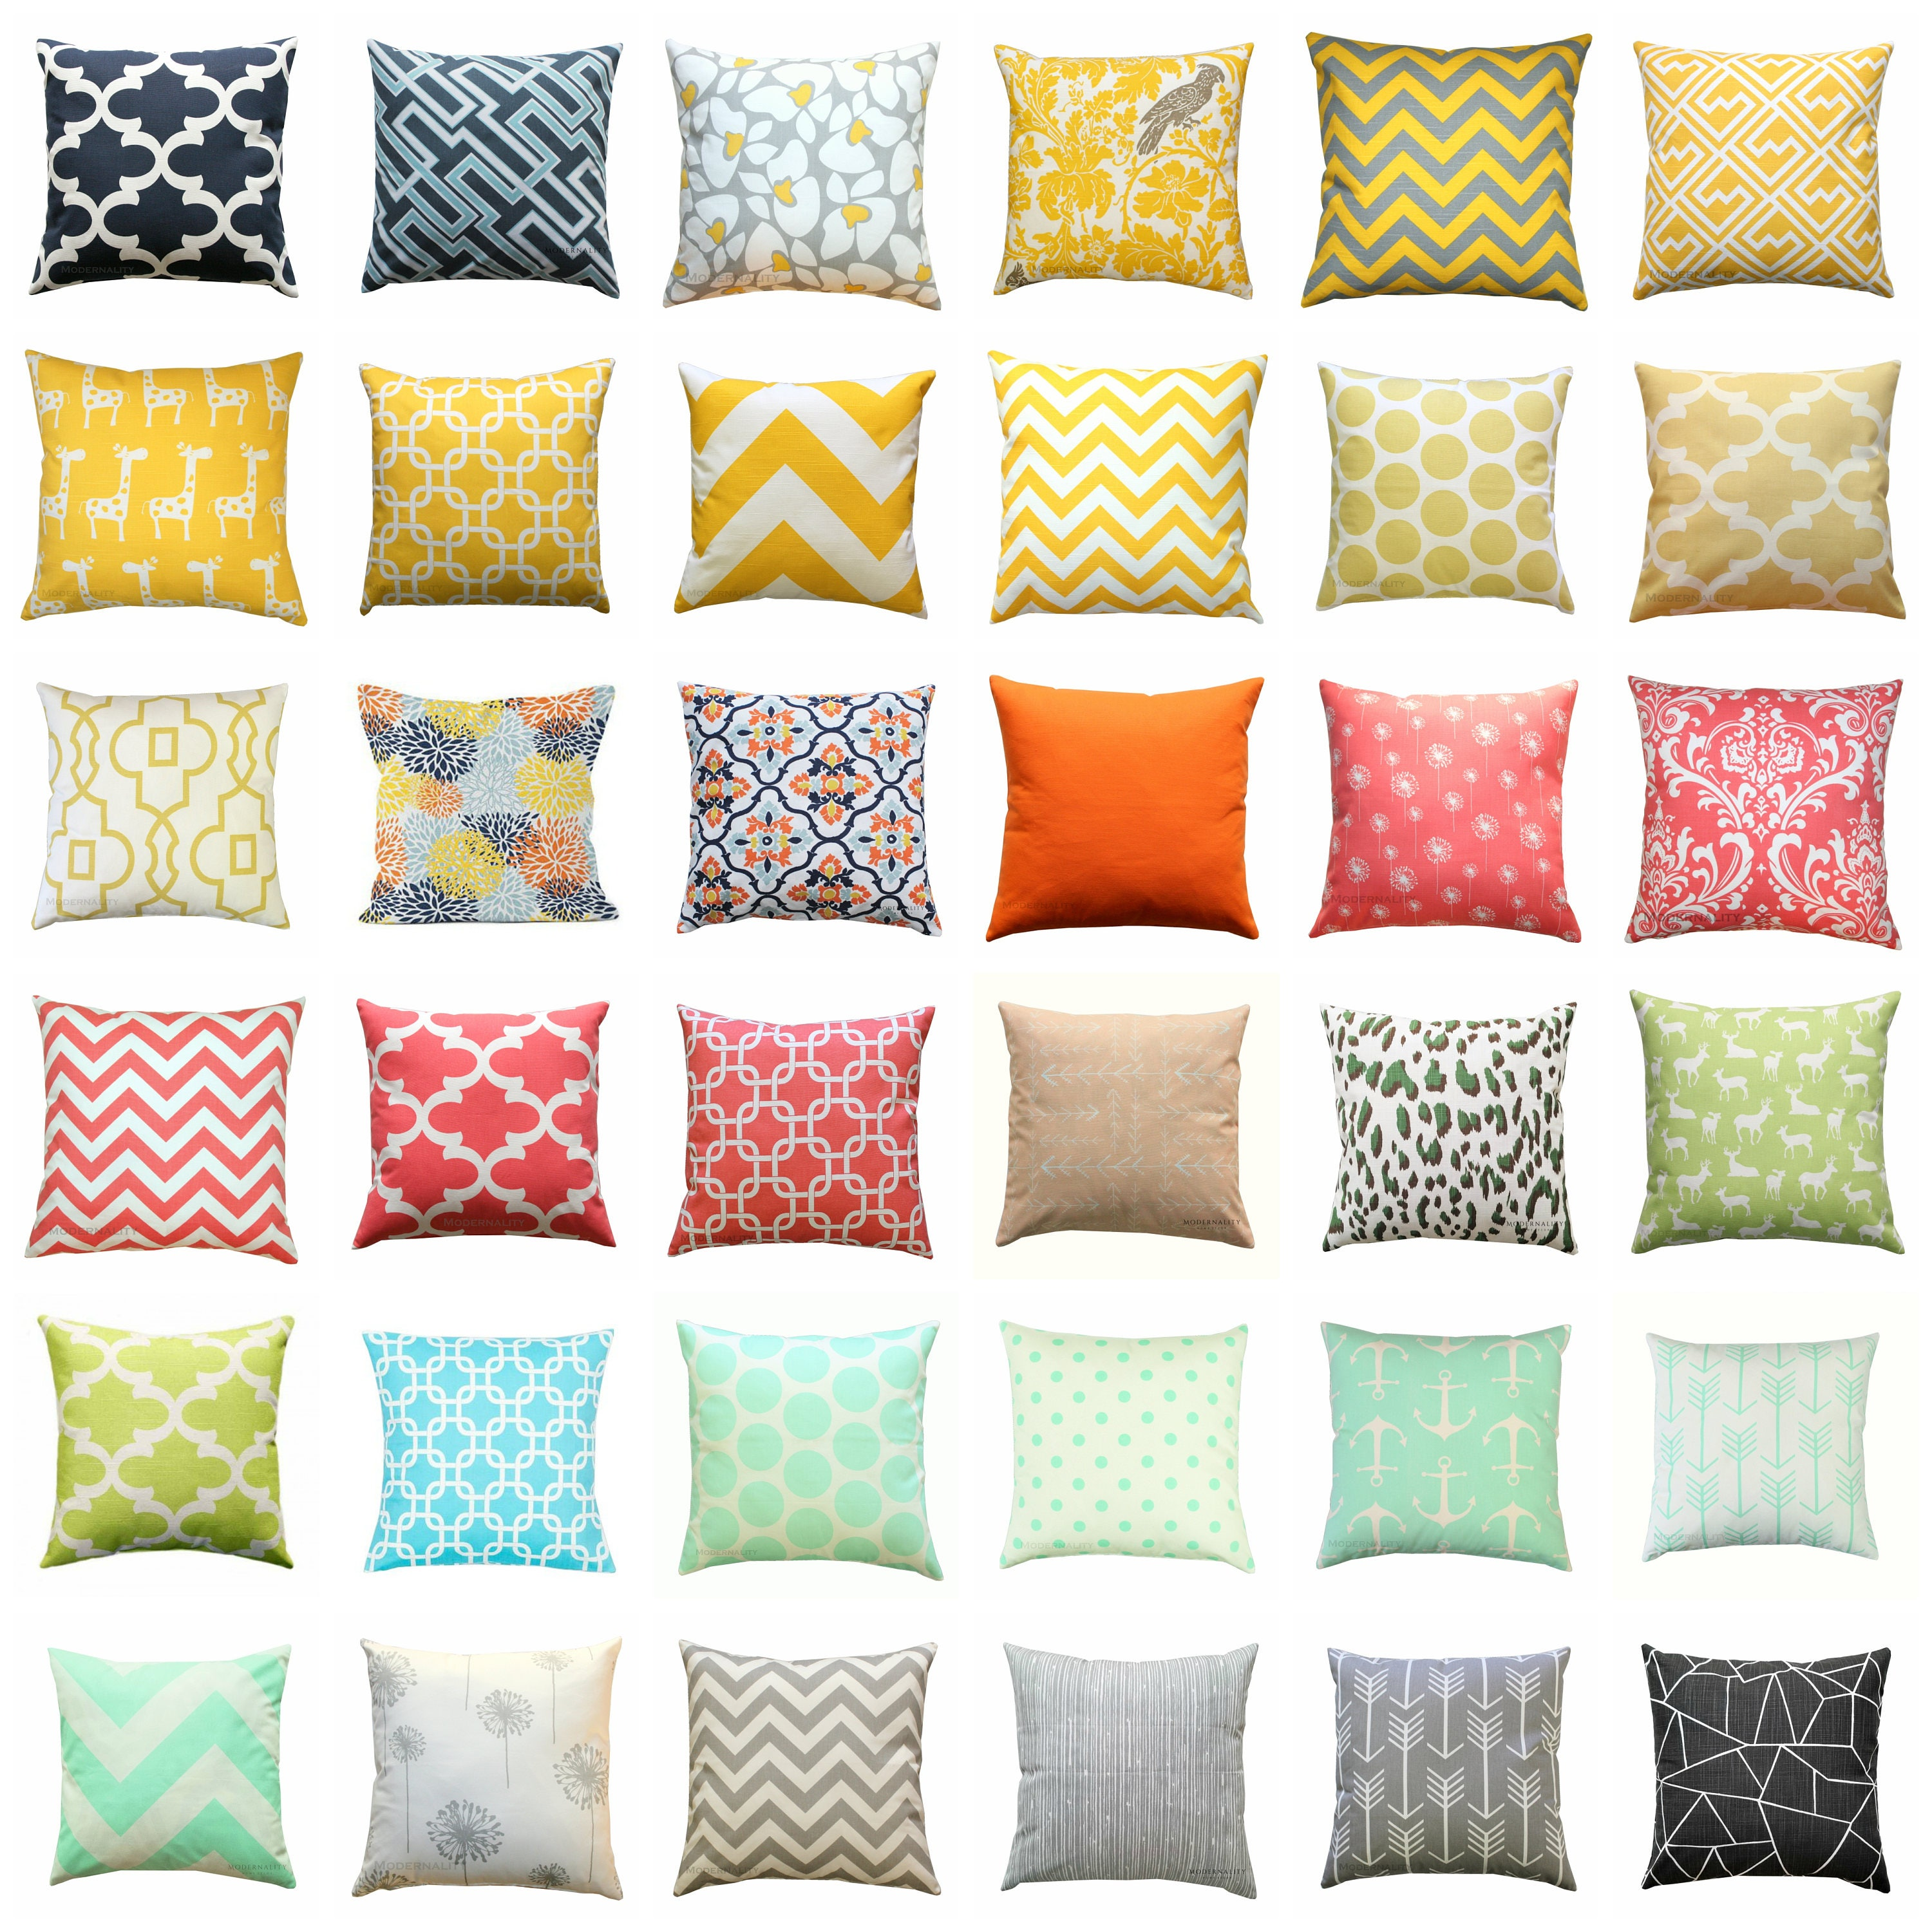 CLEARANCE Throw Pillow Covers Decorative Pillows Cheap